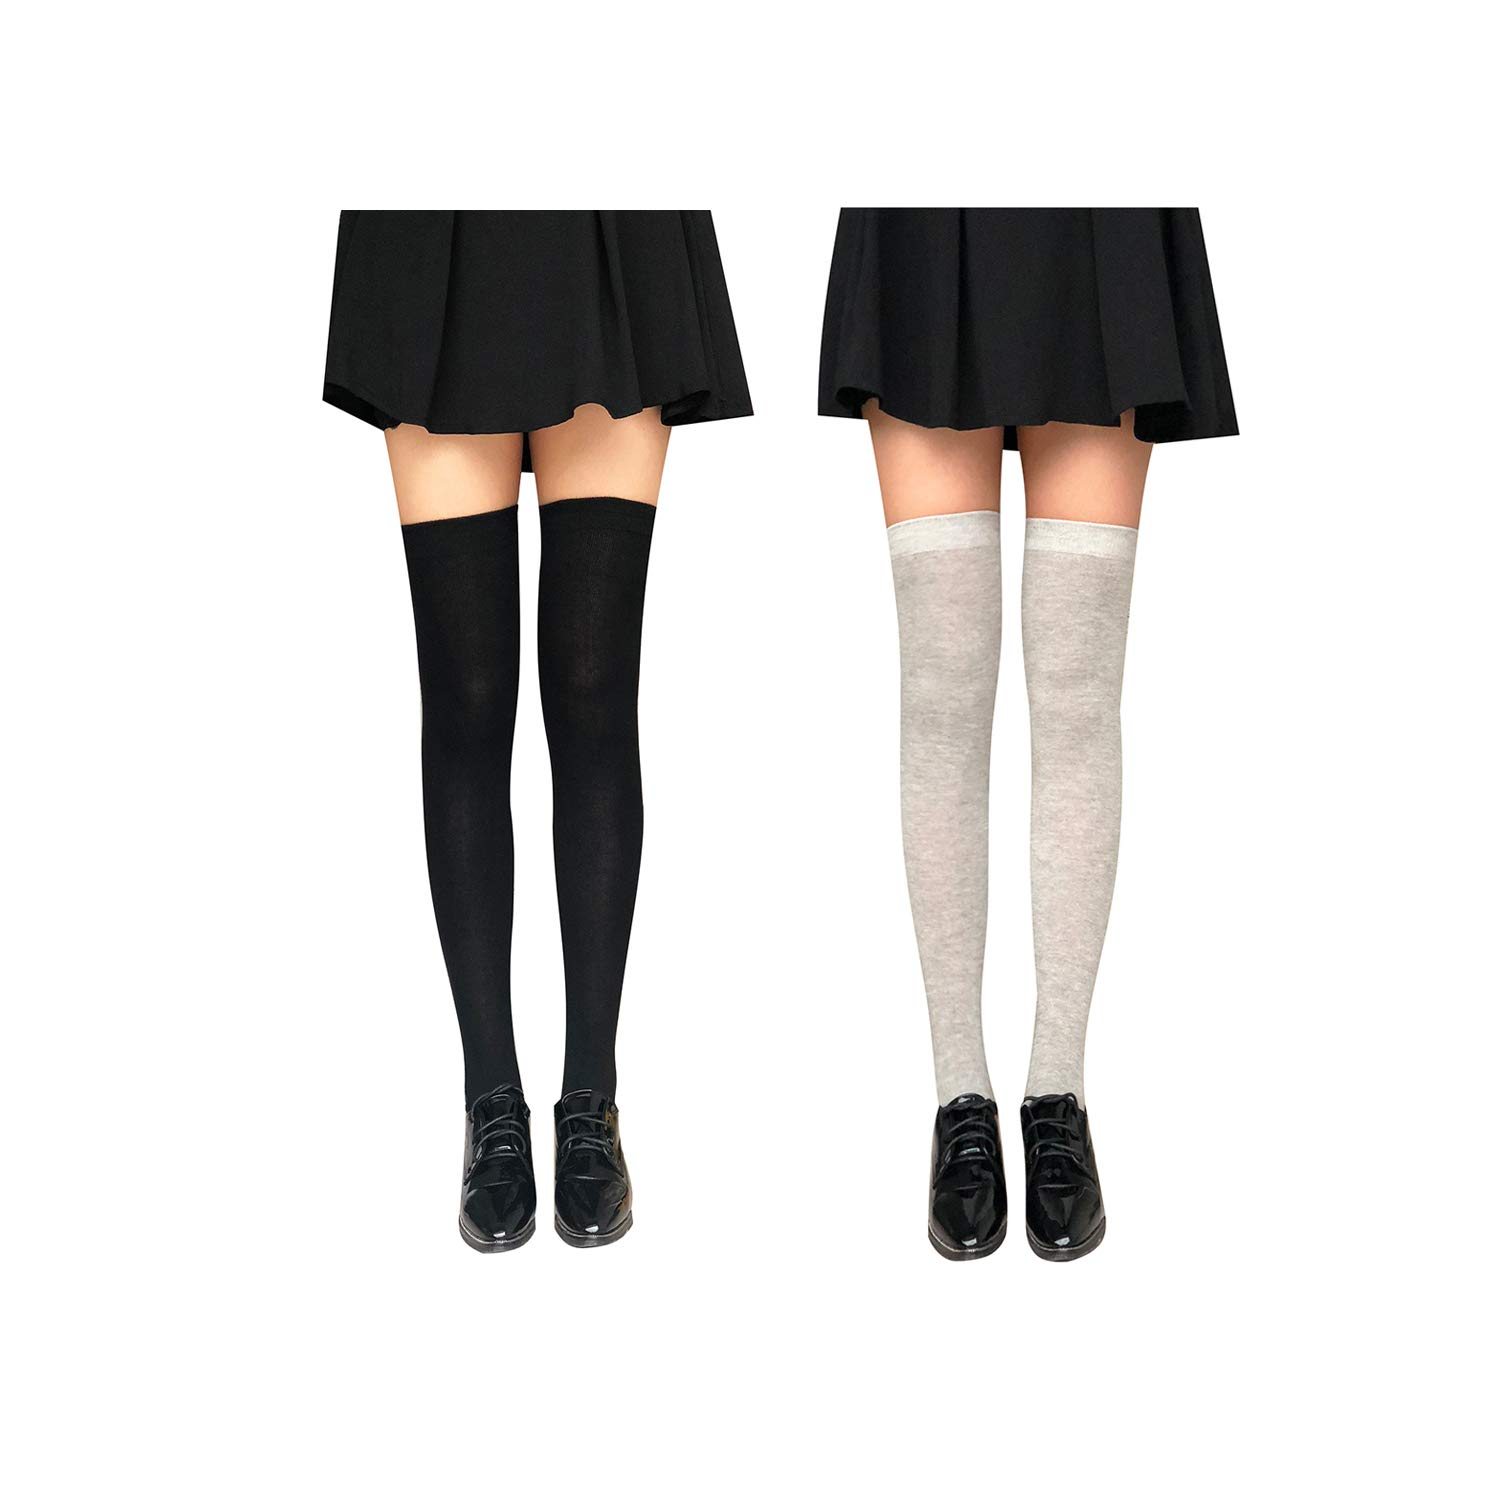 Kaariss Women Cotton Knit Over the Knee Socks Crochet Thigh High Stockings Dresses Cosplay Socks Leg Warmers Leggings